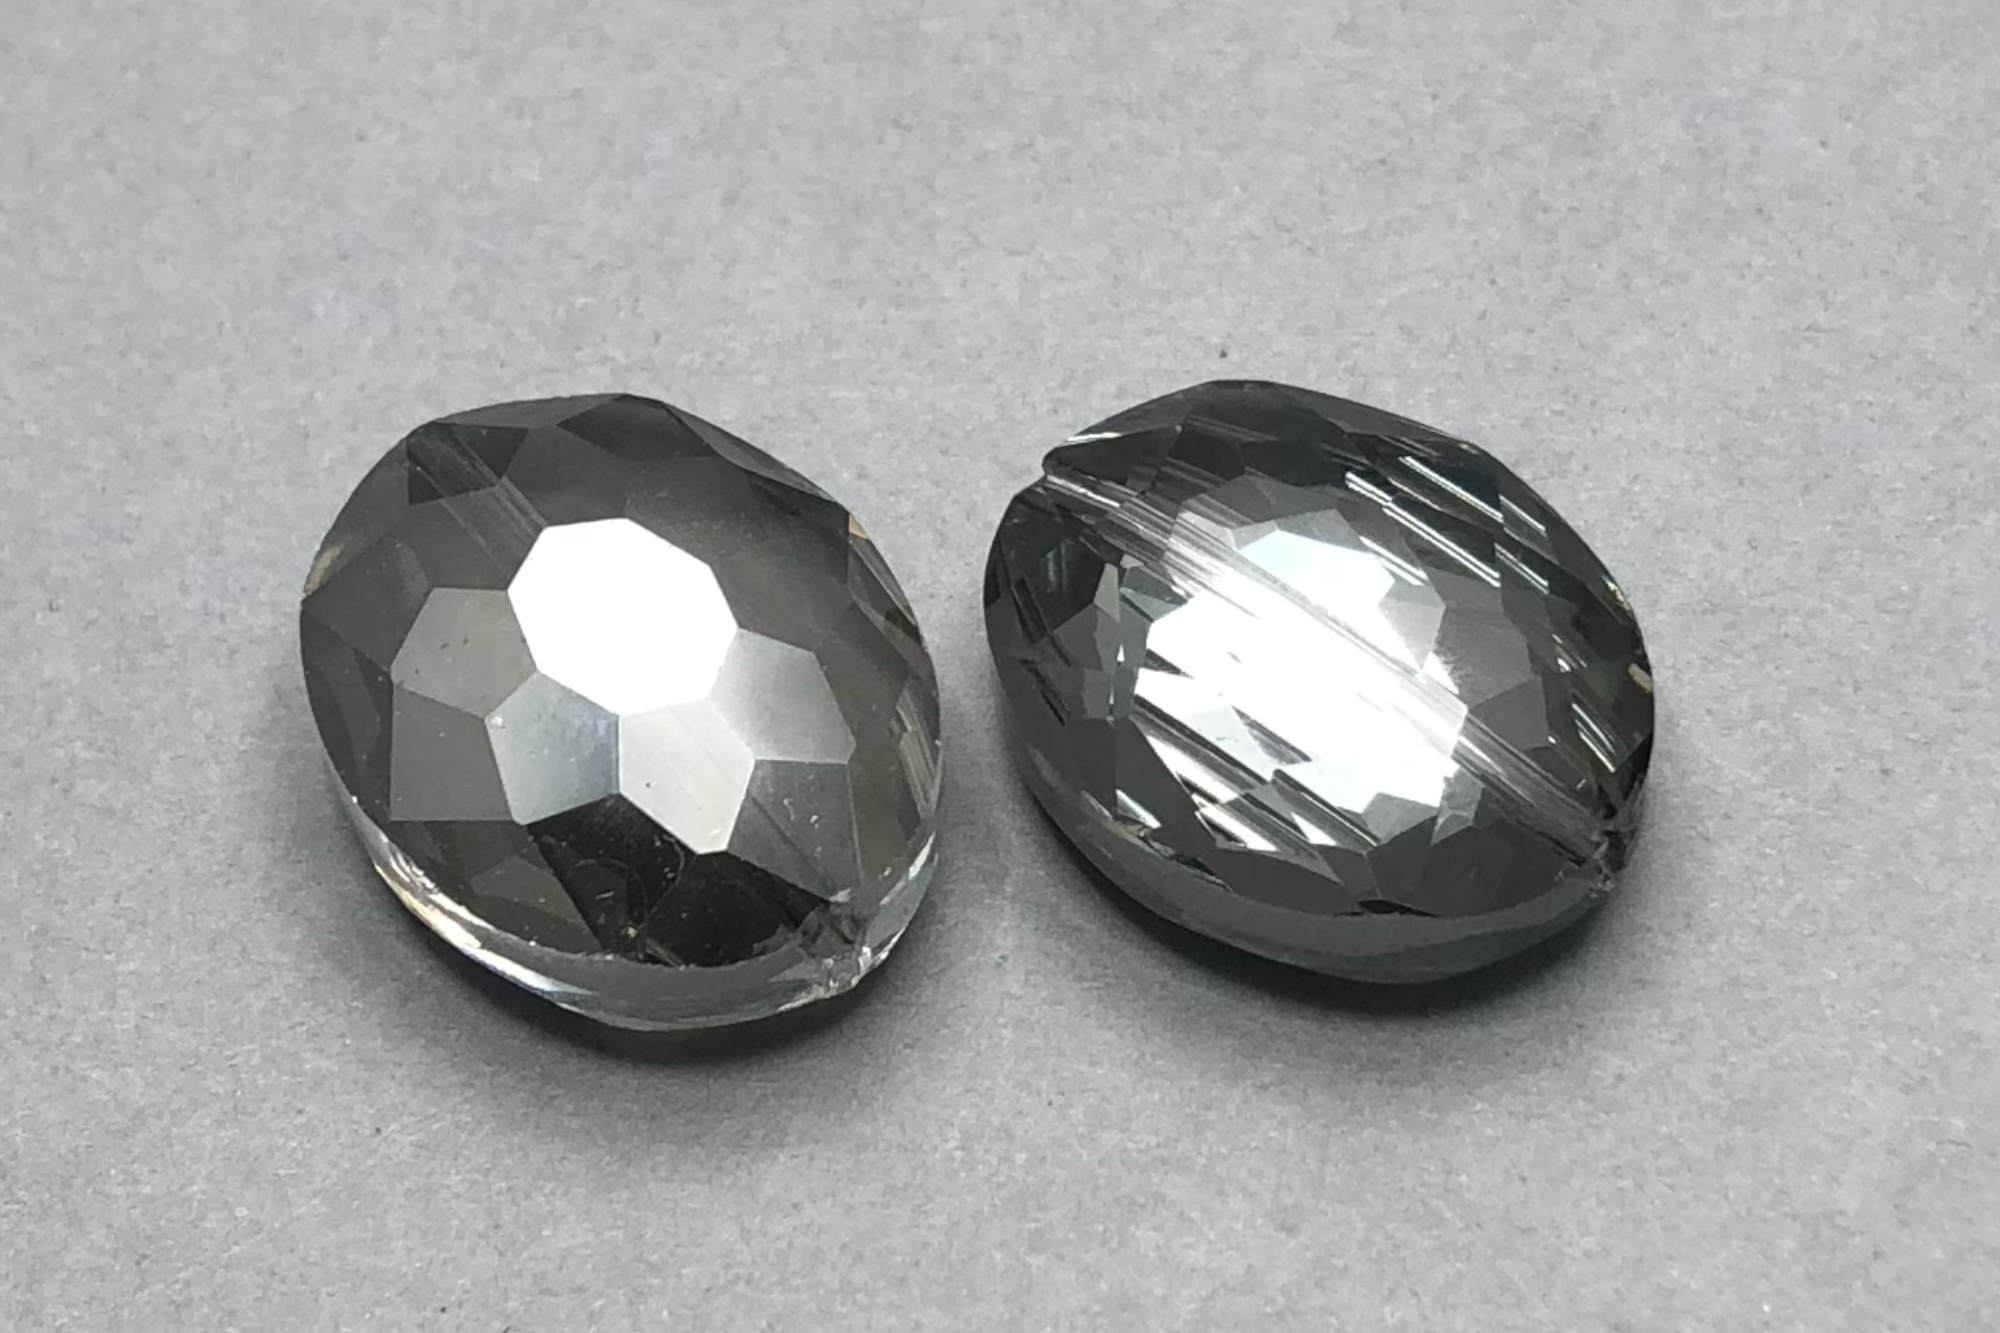 Metallic Silver/Grey Oval Faceted Glass Bead, 1mm hole